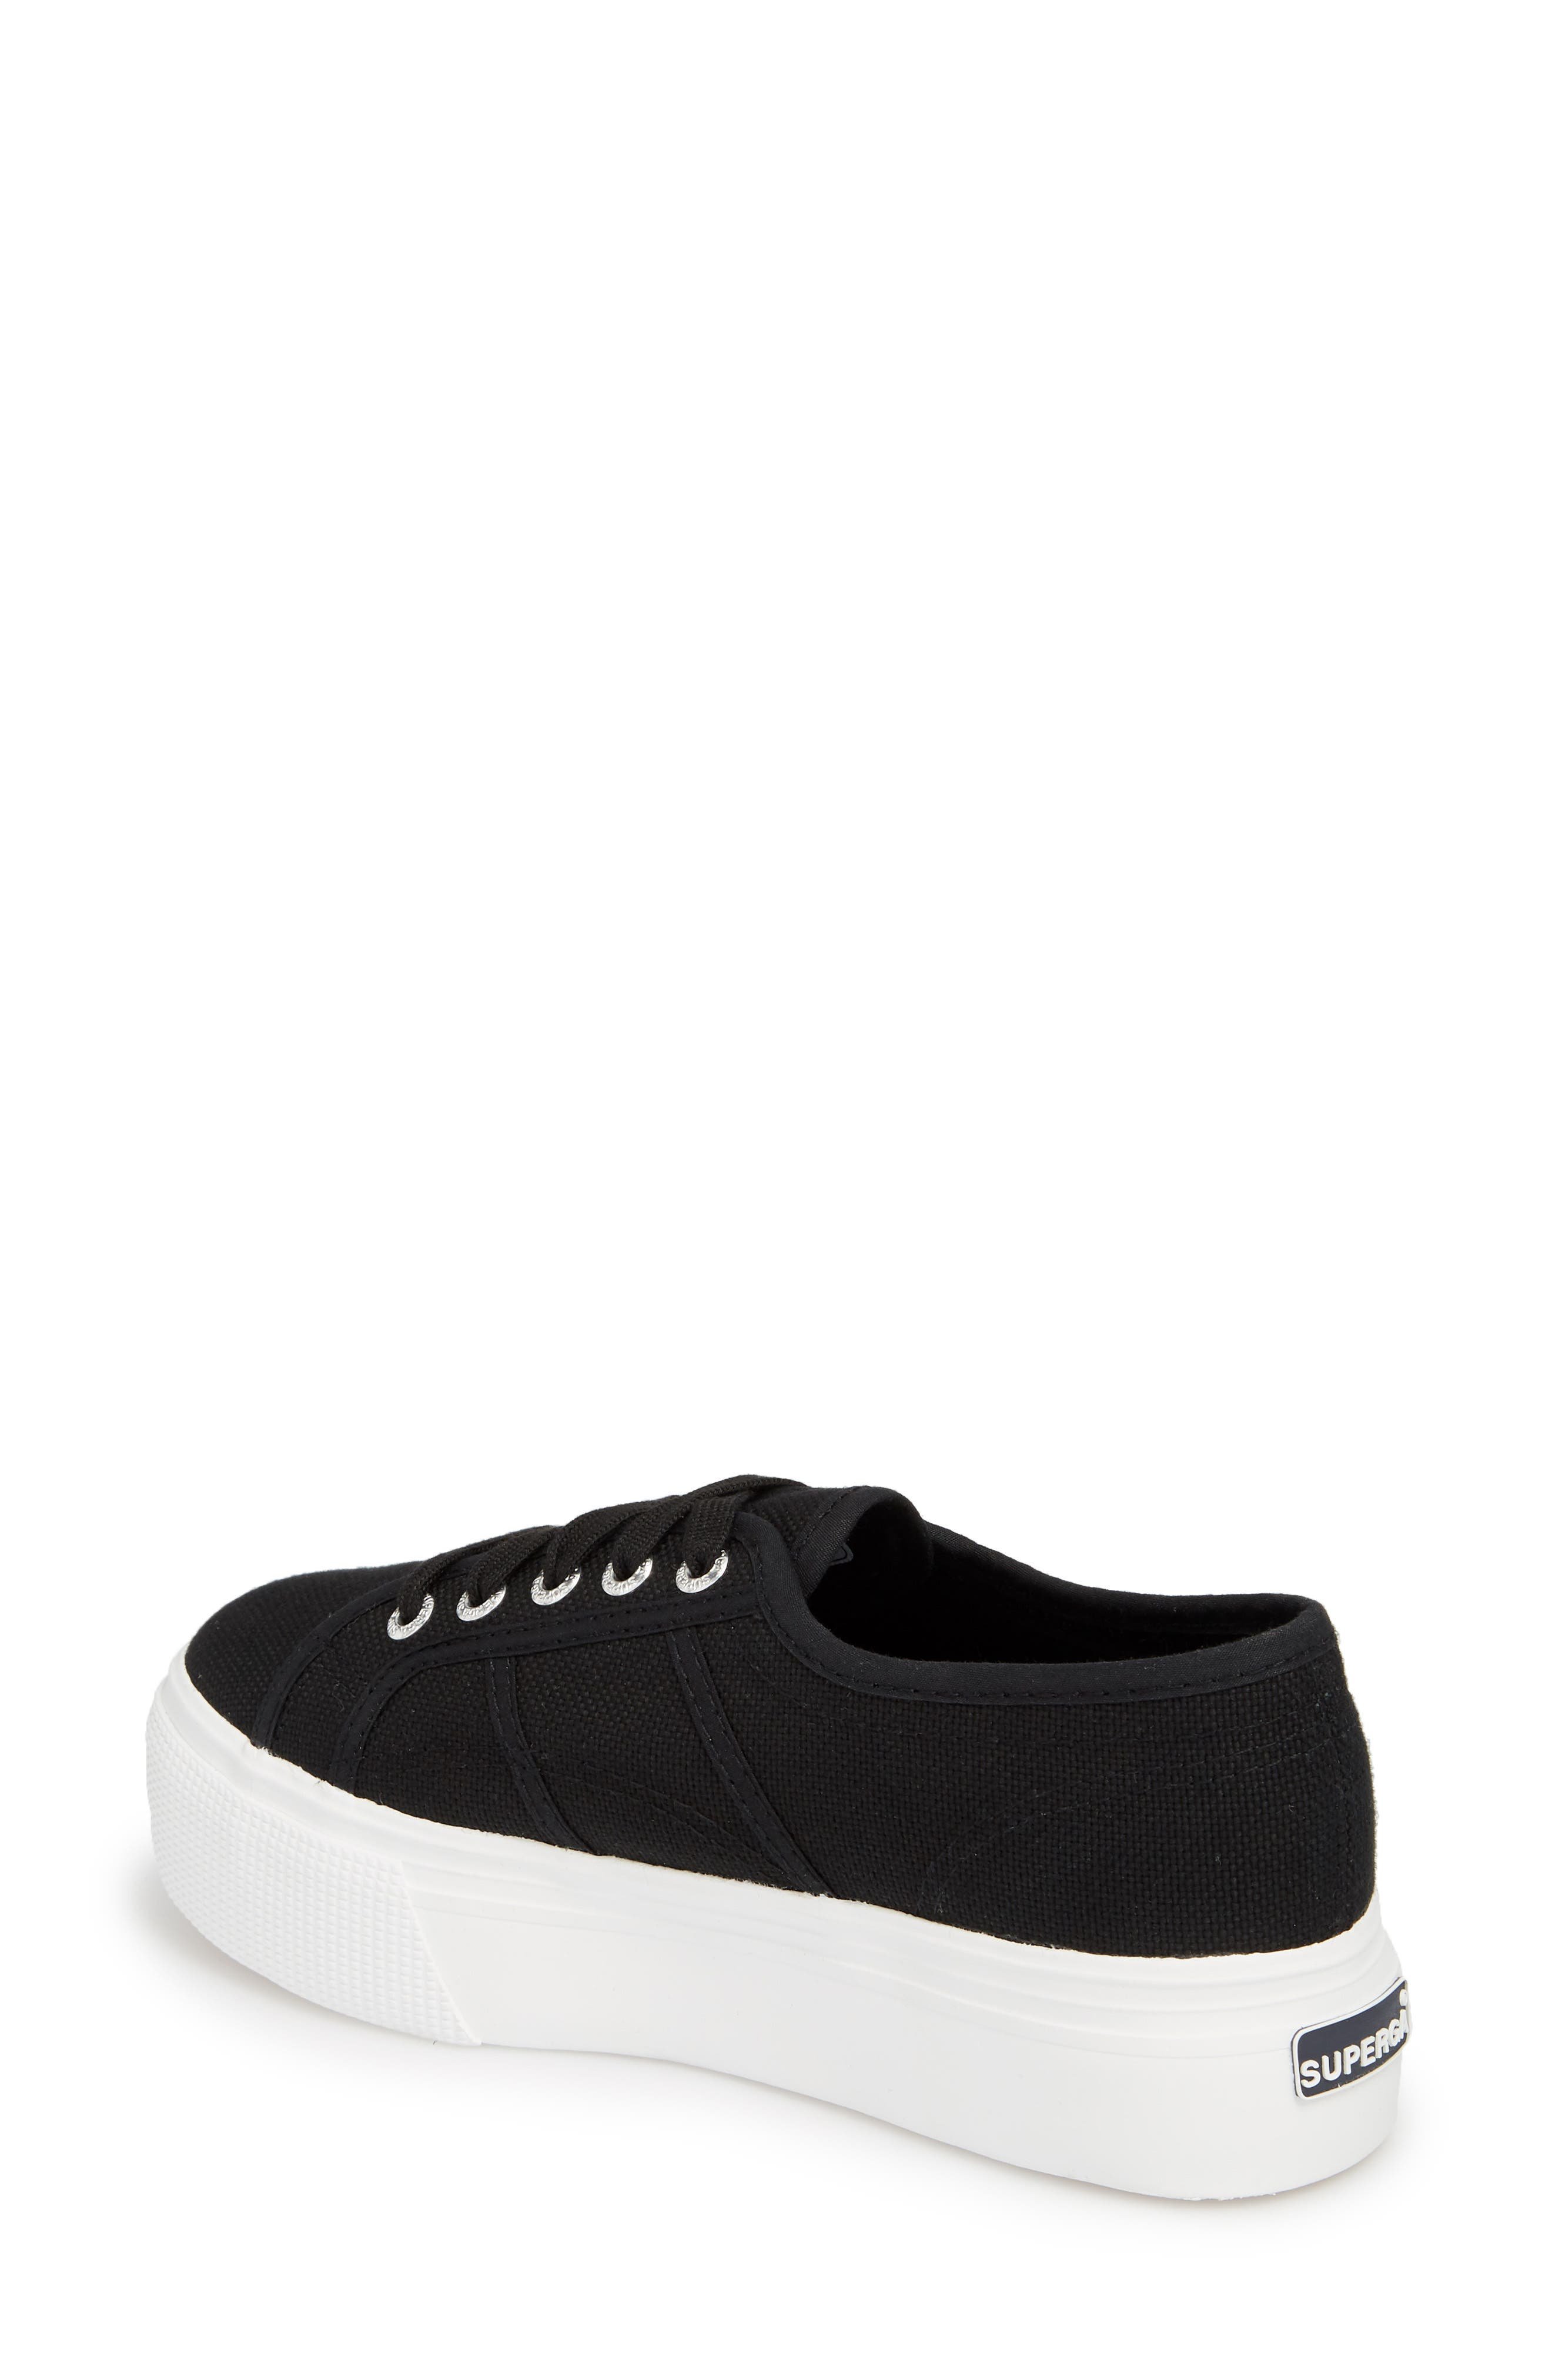 ,                             'Acot Linea' Sneaker,                             Alternate thumbnail 2, color,                             BLACK/ WHITE